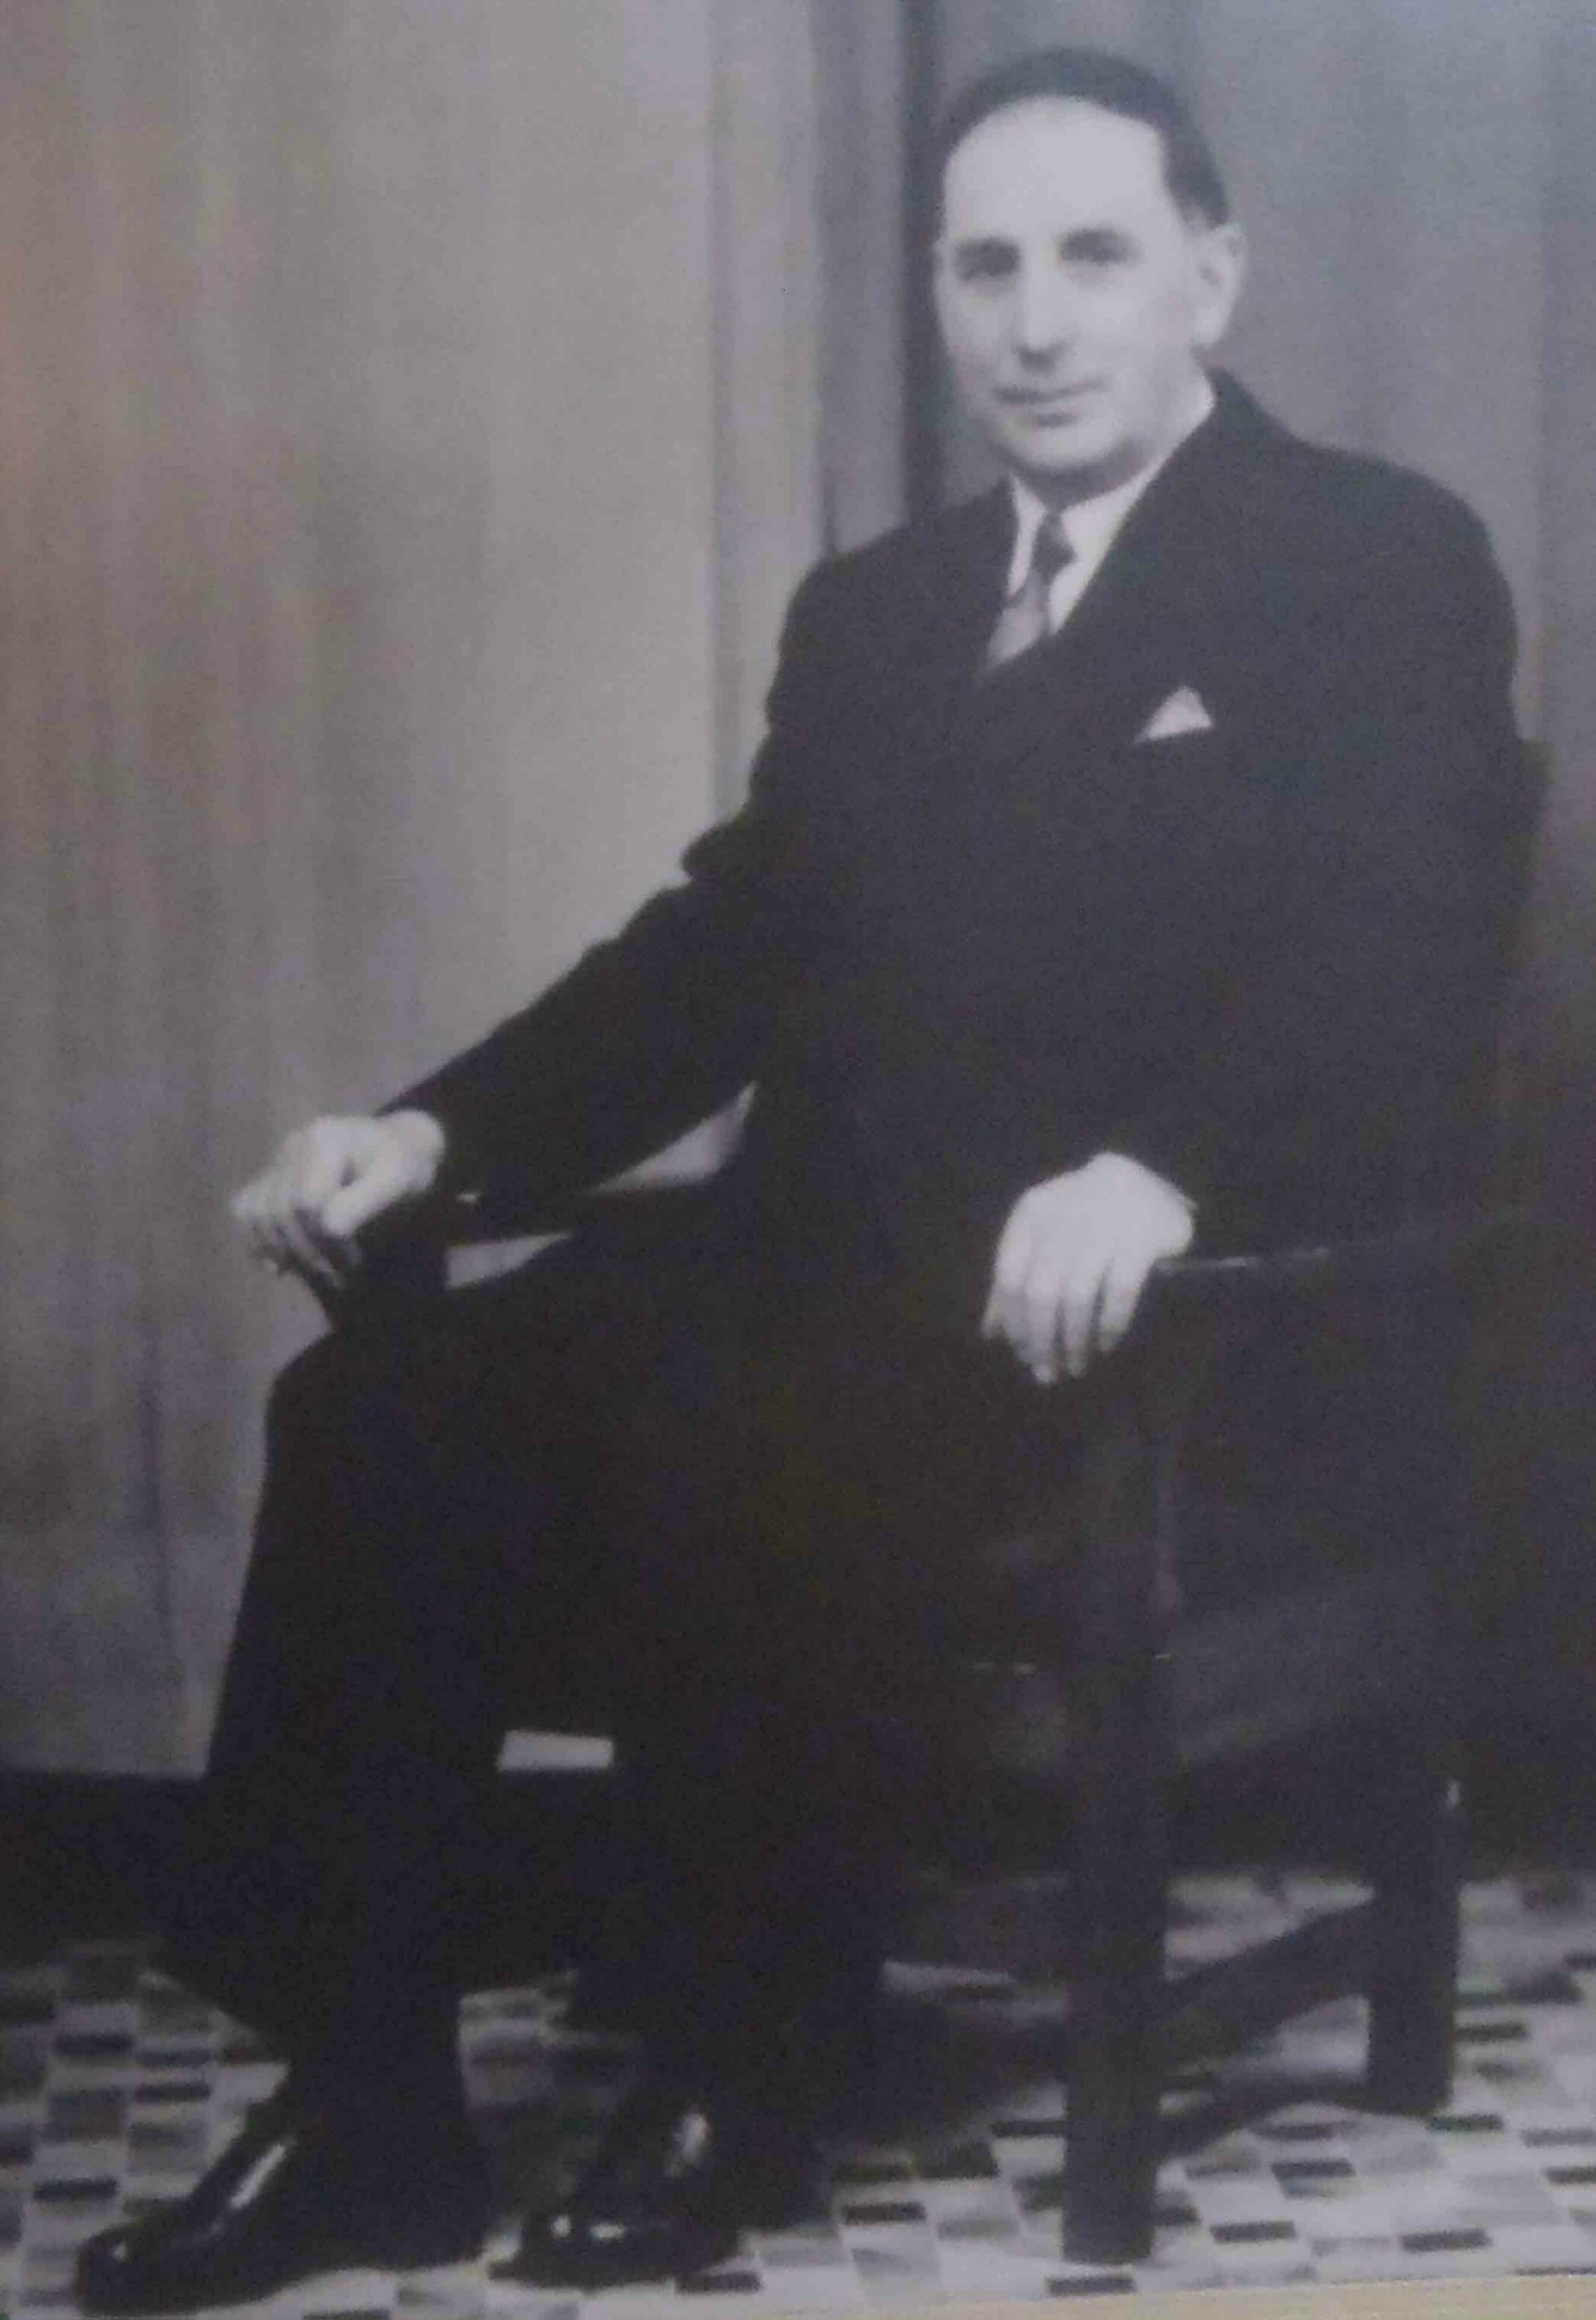 Edward Lee, building contractor and Mayor of Duncan 1940-42